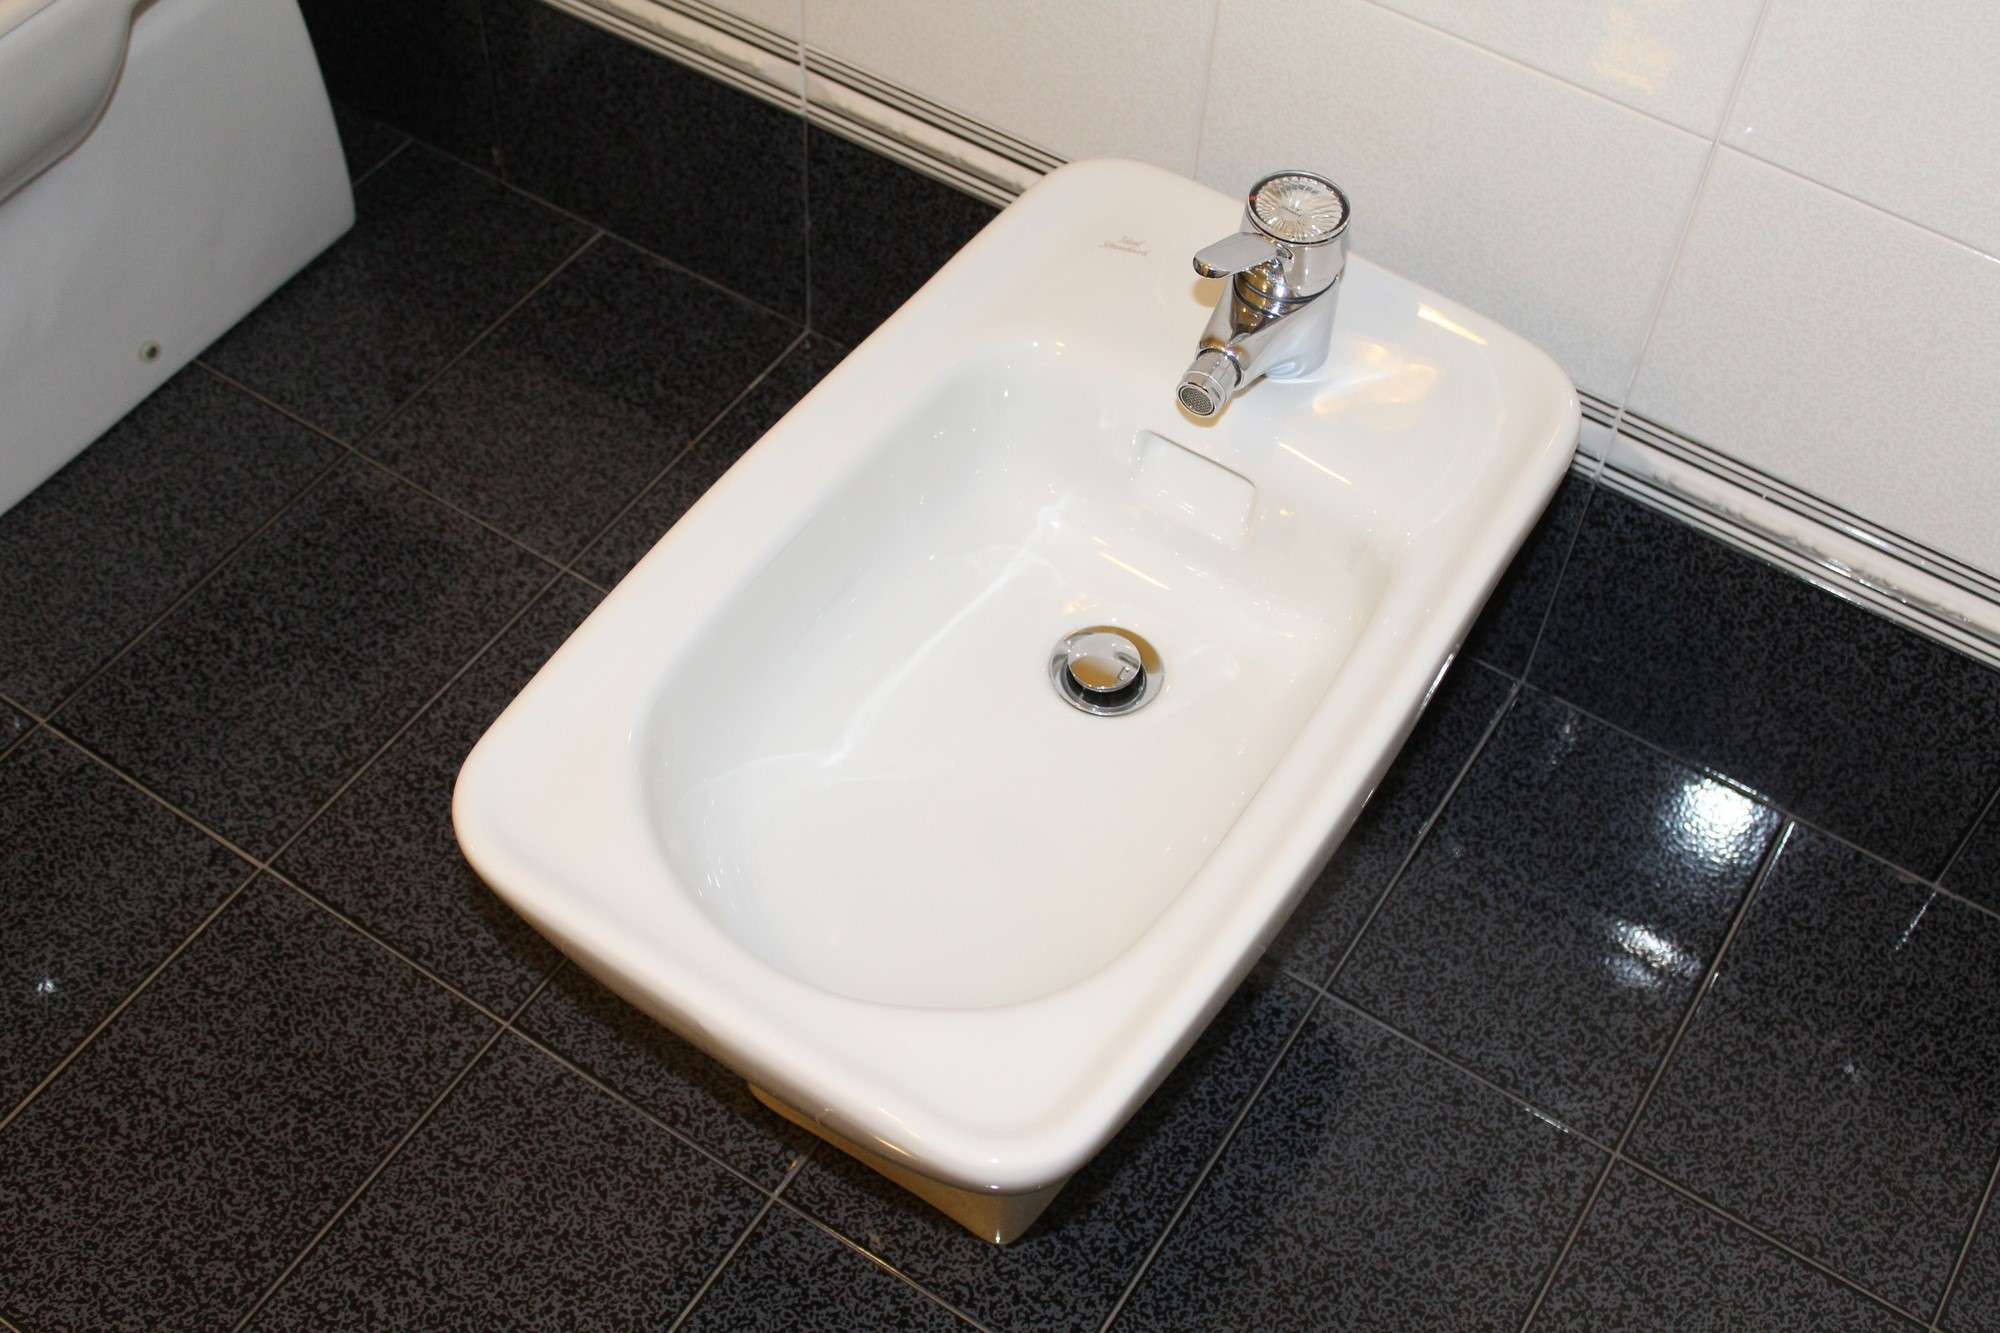 image - How to Use a Bidet: A Guide for First Time Users